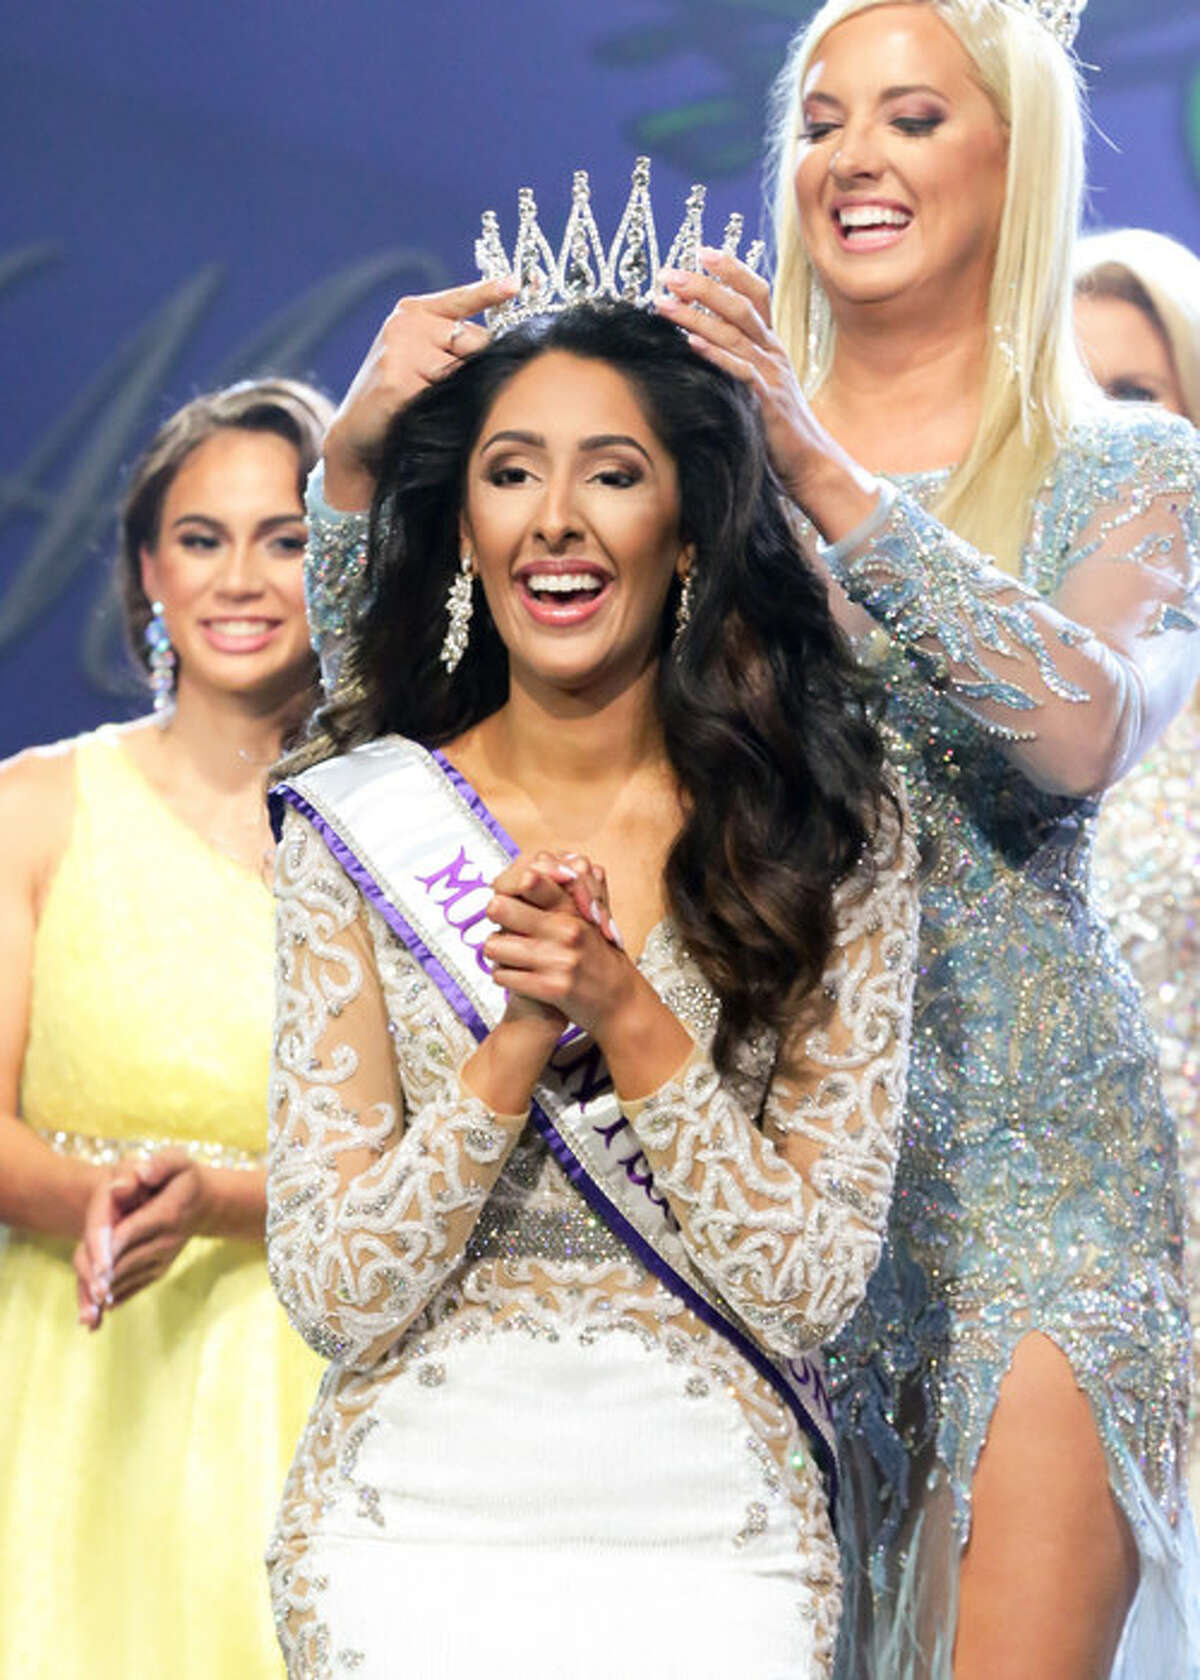 Miss International 2021, Deepa Dhillon, of Huntley, Ill., is crowned by Miss International 2020, Megan Vladic, during the annual final competition held July 31 in Kingsport, Tennessee. Photo credit: Paul Preston Photographer (PRNewsfoto/International Pageants, Inc.)